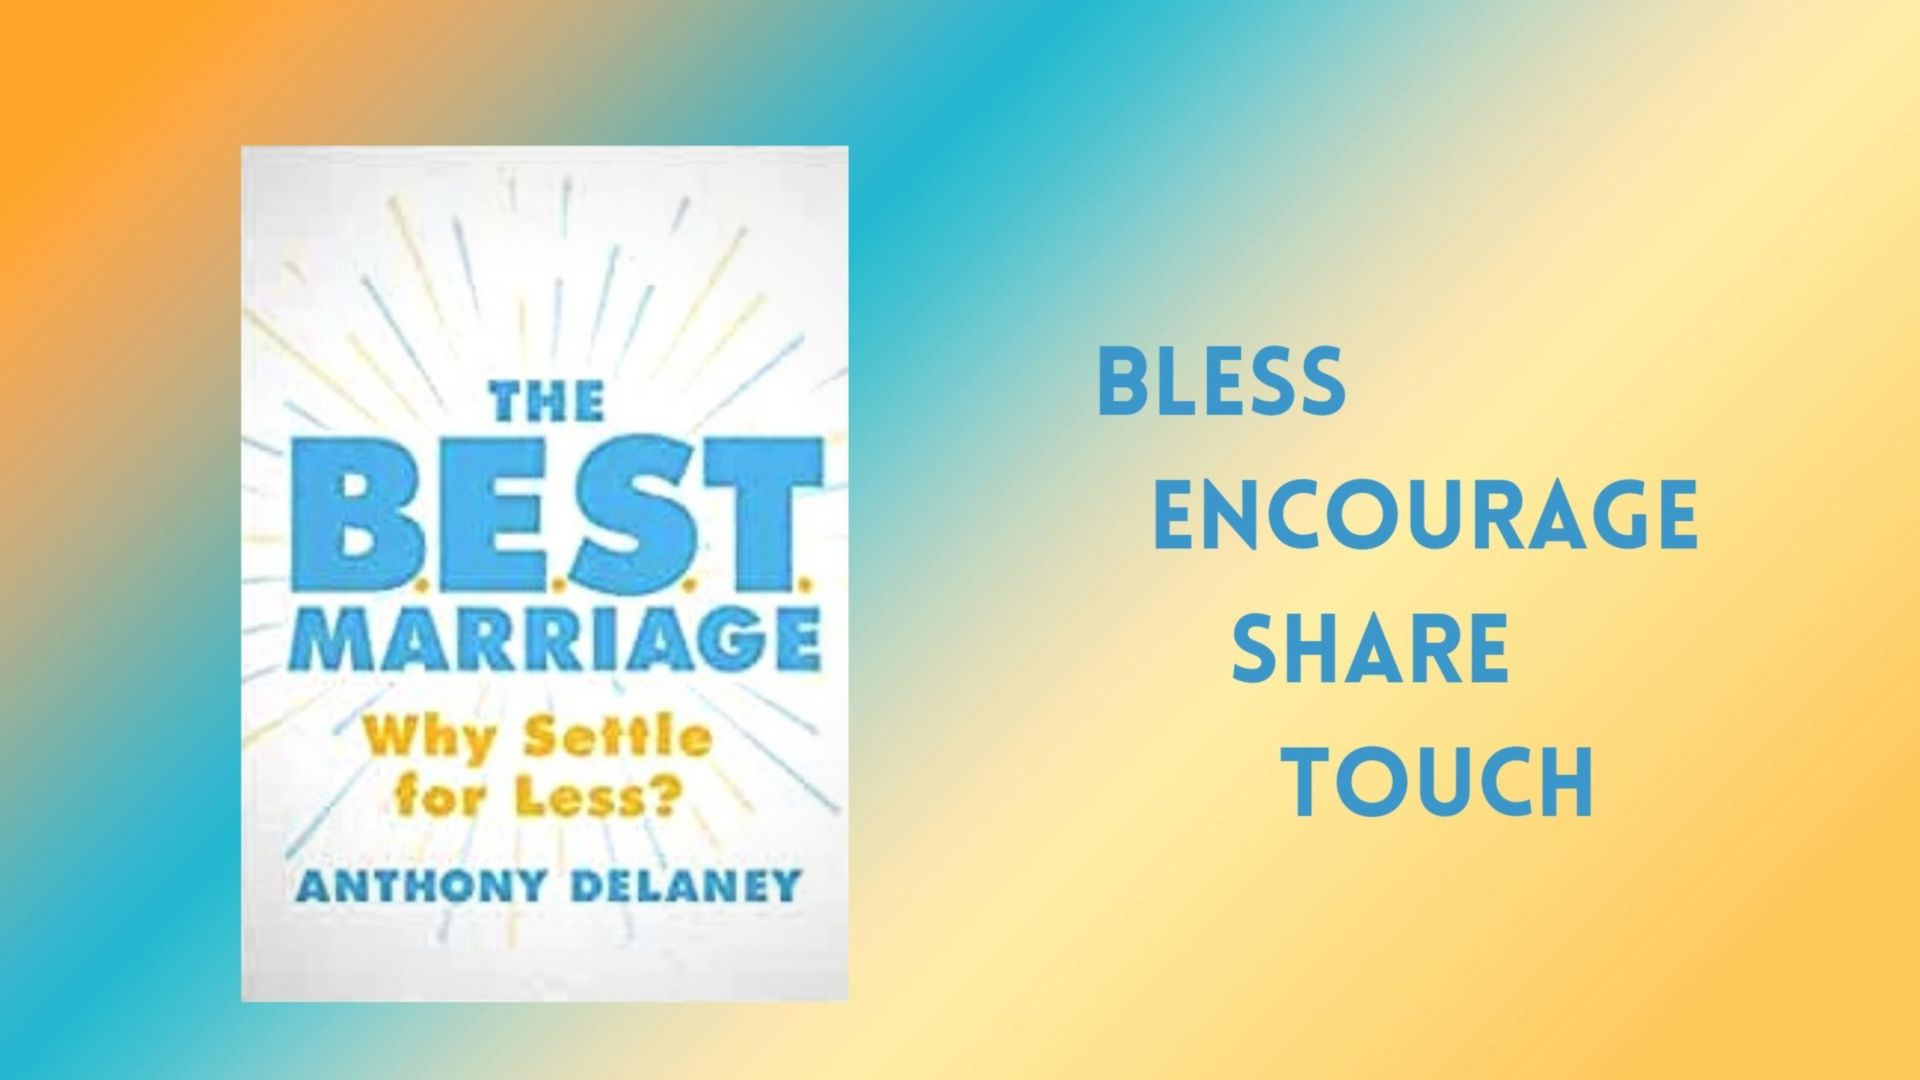 The B.E.S.T. Marriage - a new book by Anthony Delaney